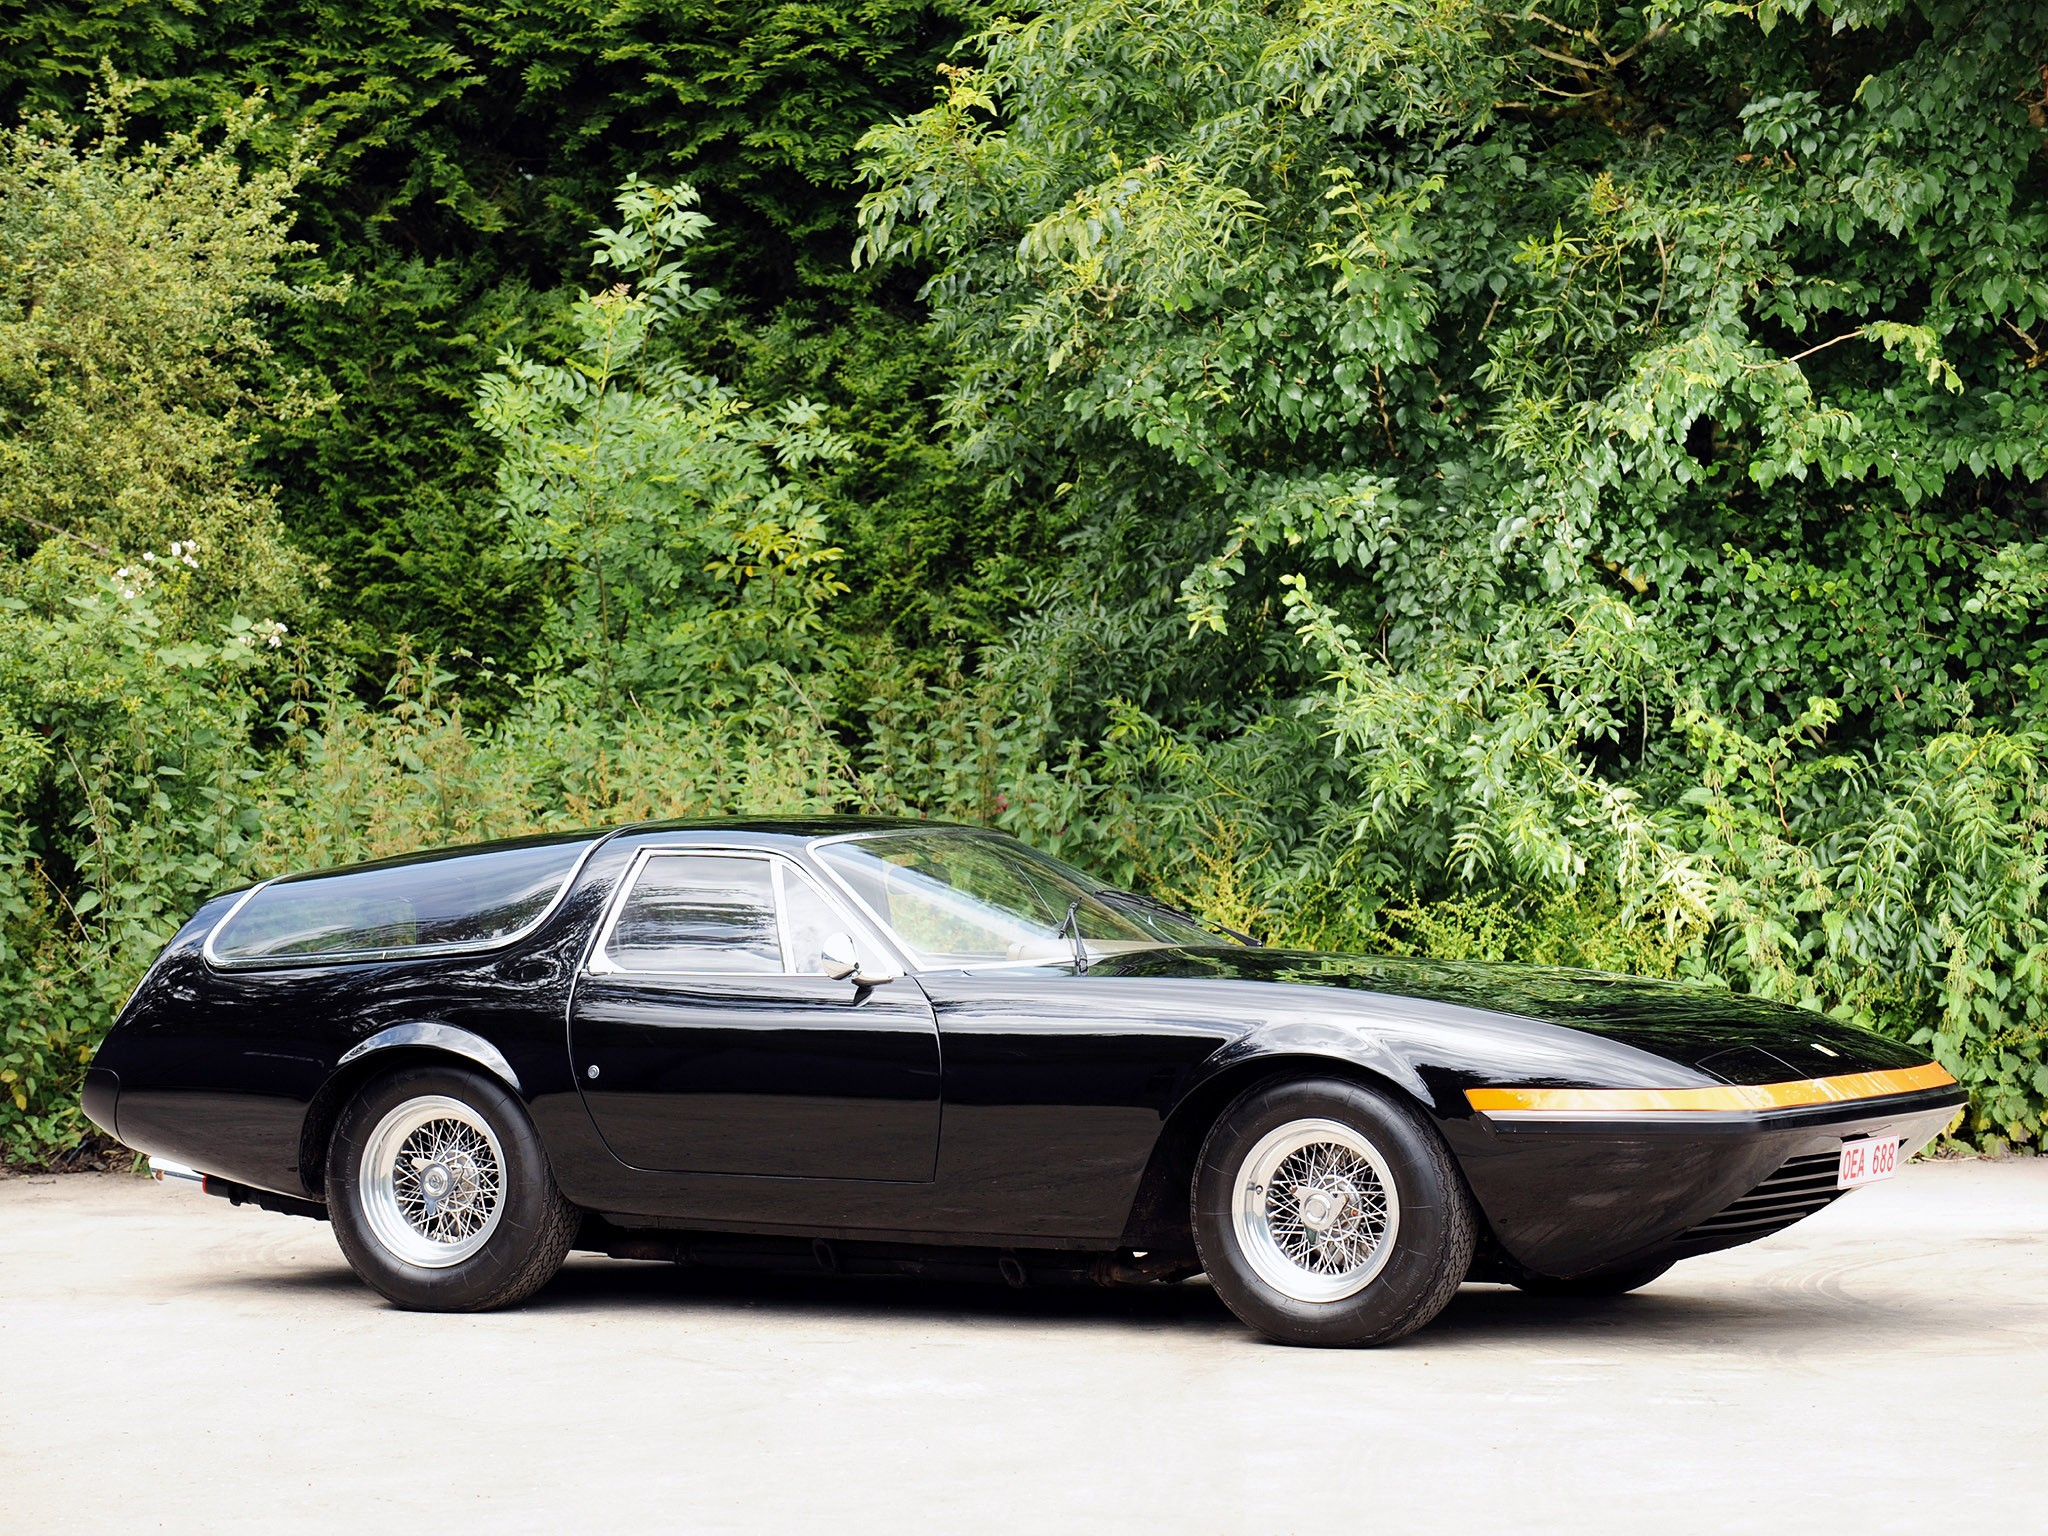 Ferrari 365 GTB4 Shooting Brake 1975